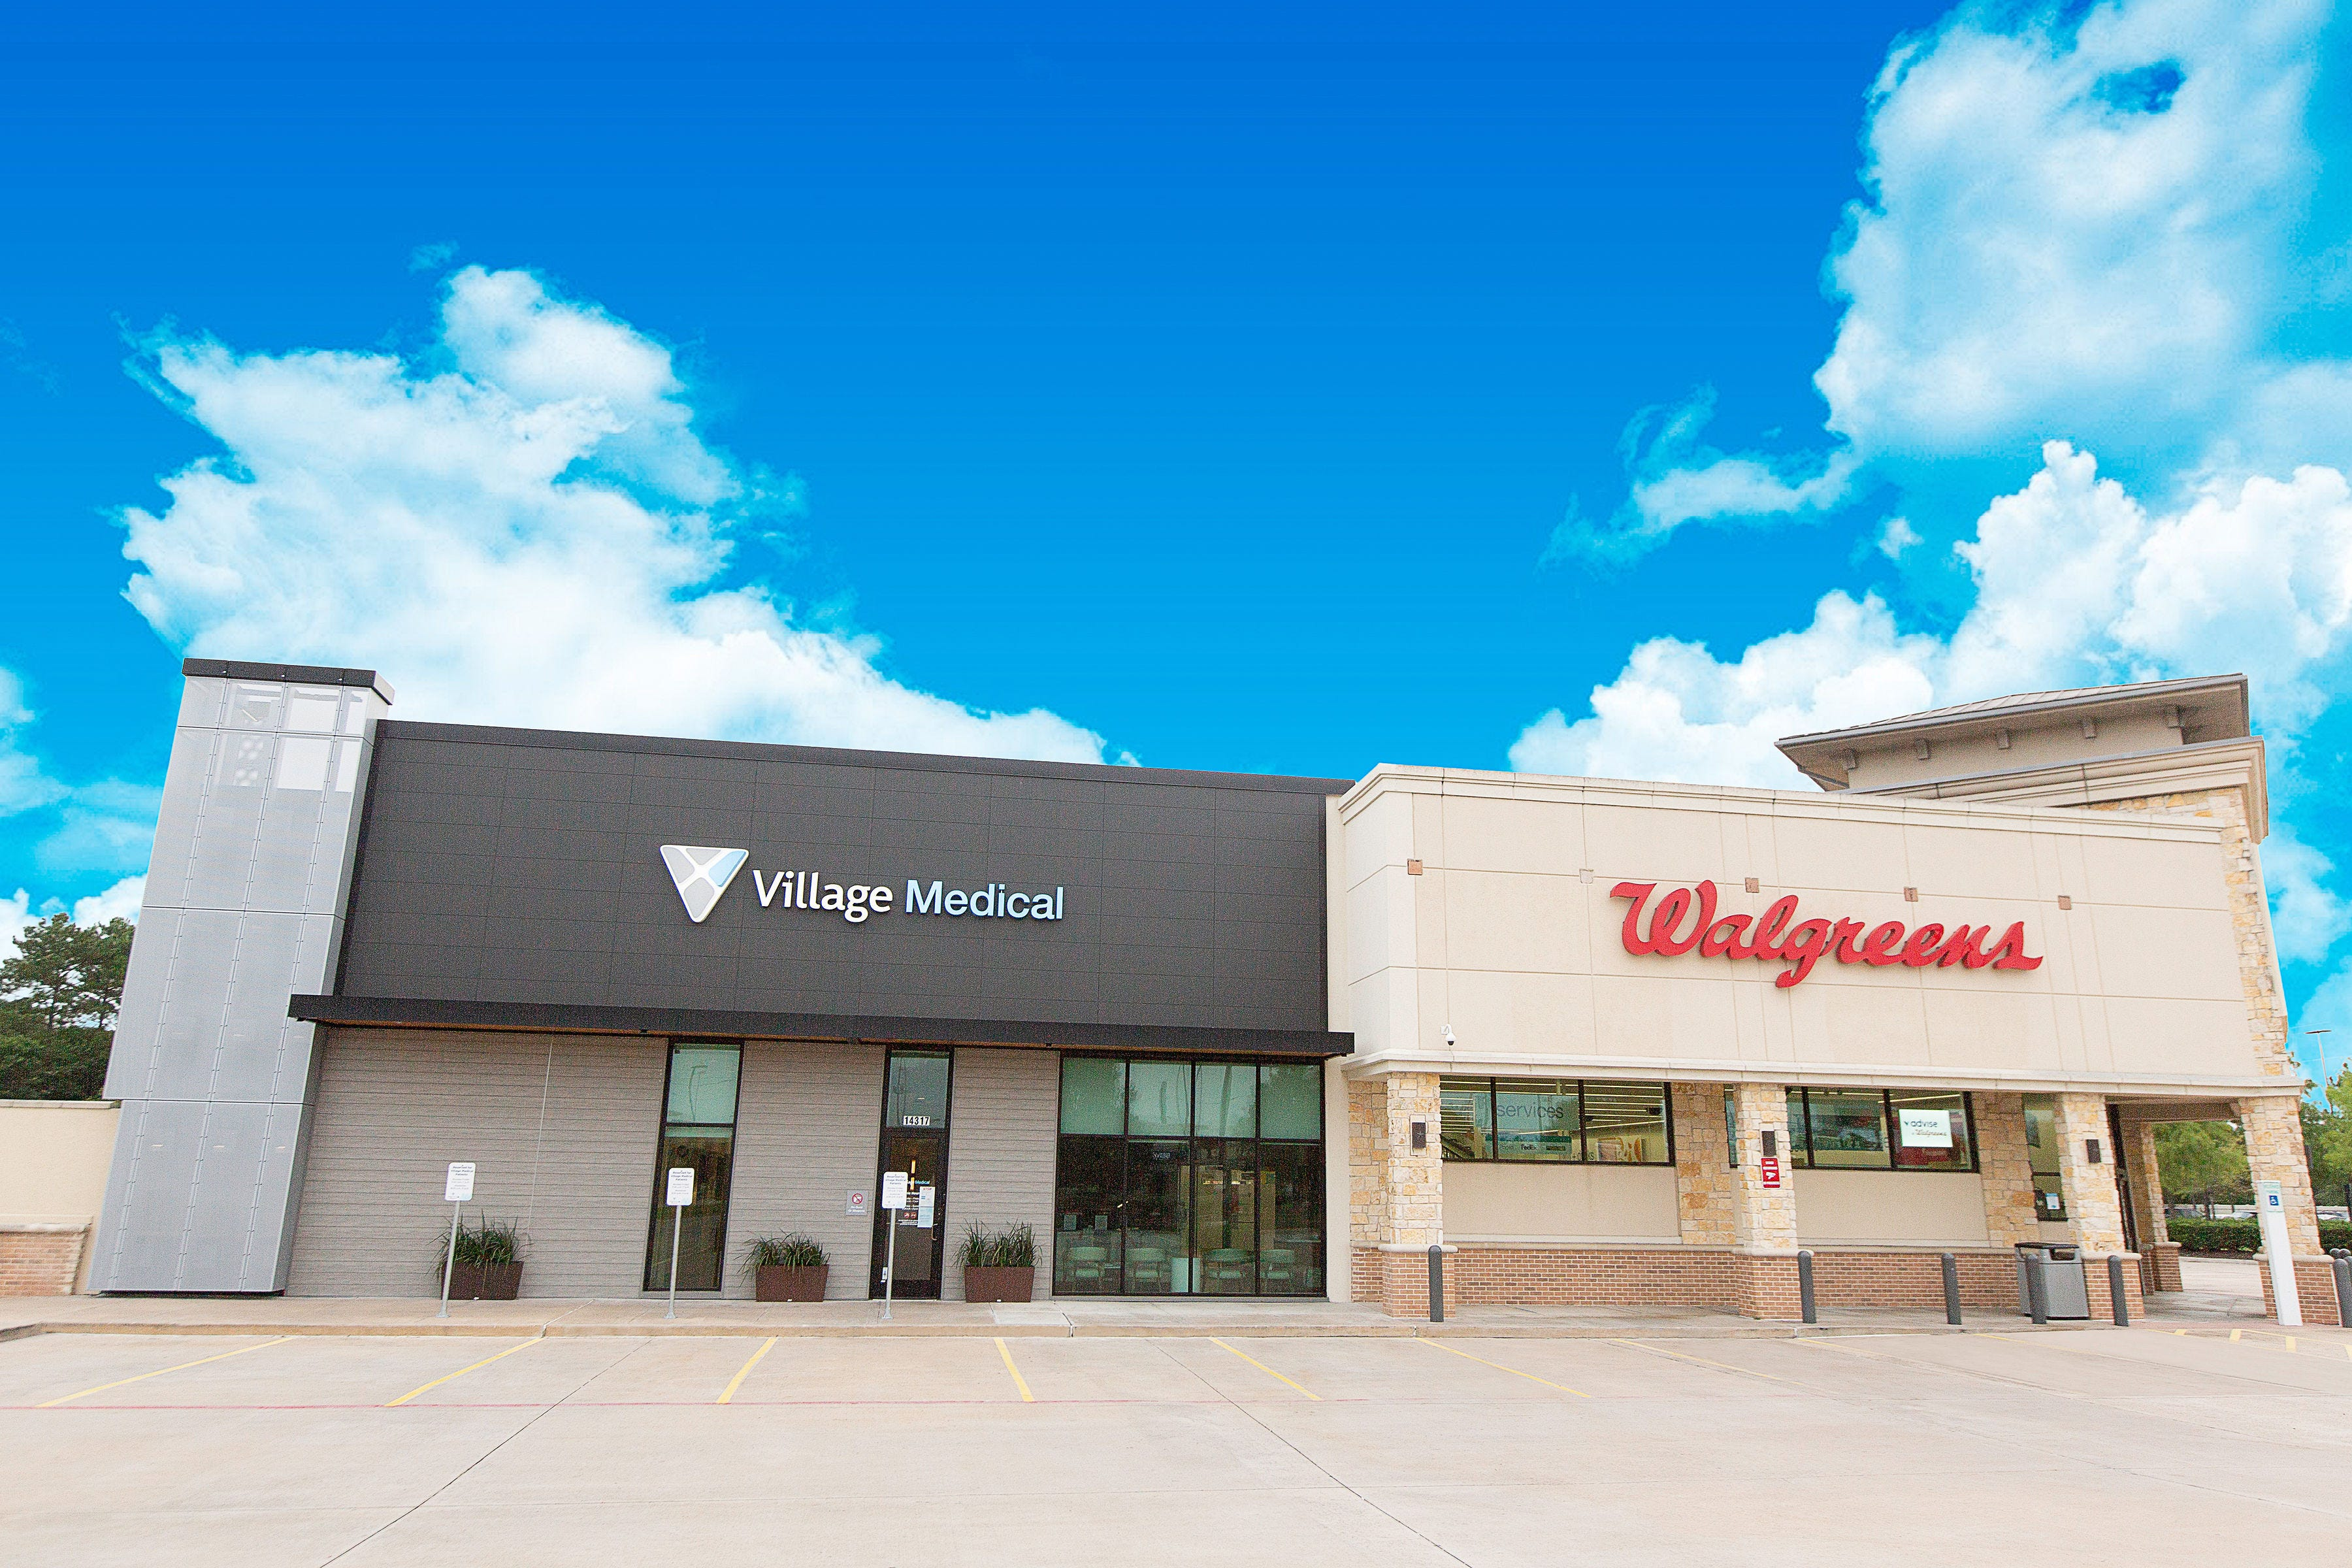 usatoday.com - Nathan Bomey, USA TODAY - Walgreens to open 500 to 700 in-store clinics with primary care doctors in deal with VillageMD